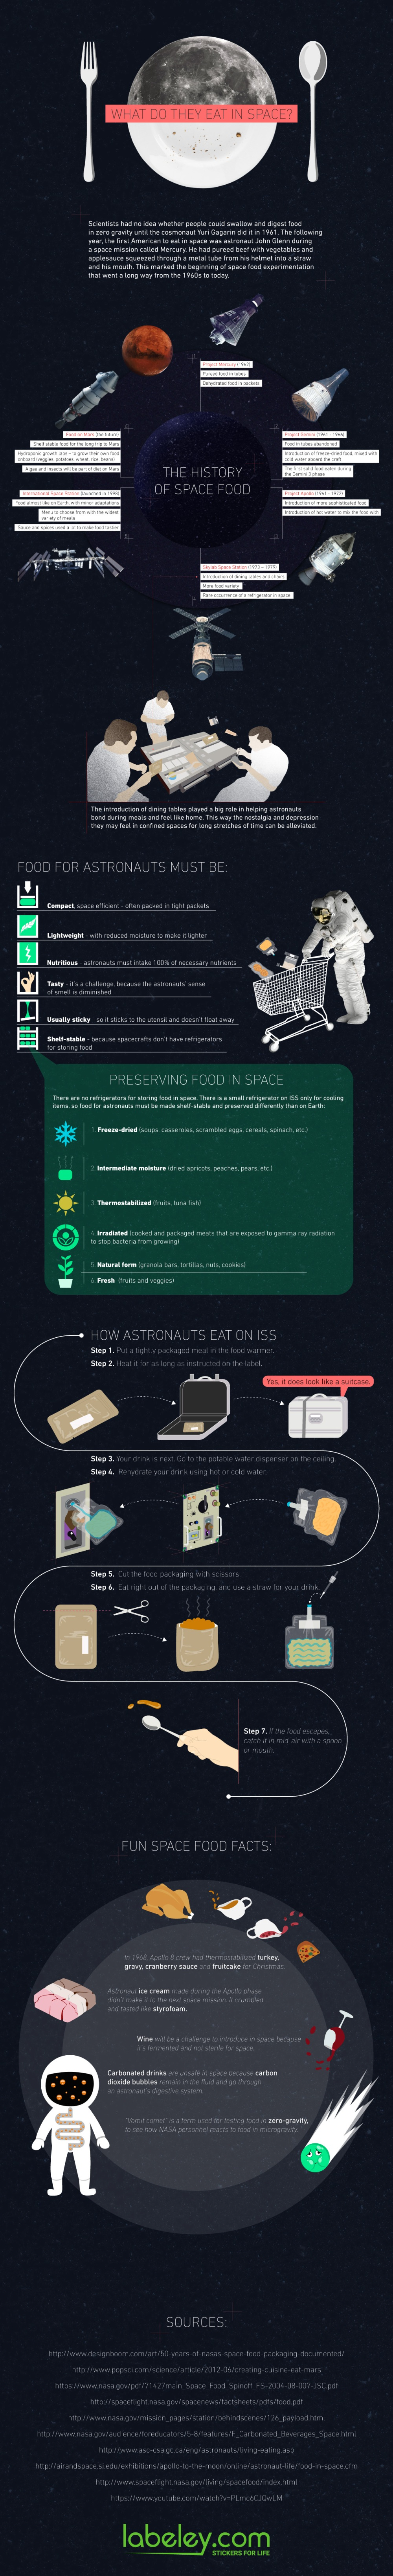 space-food-infographic